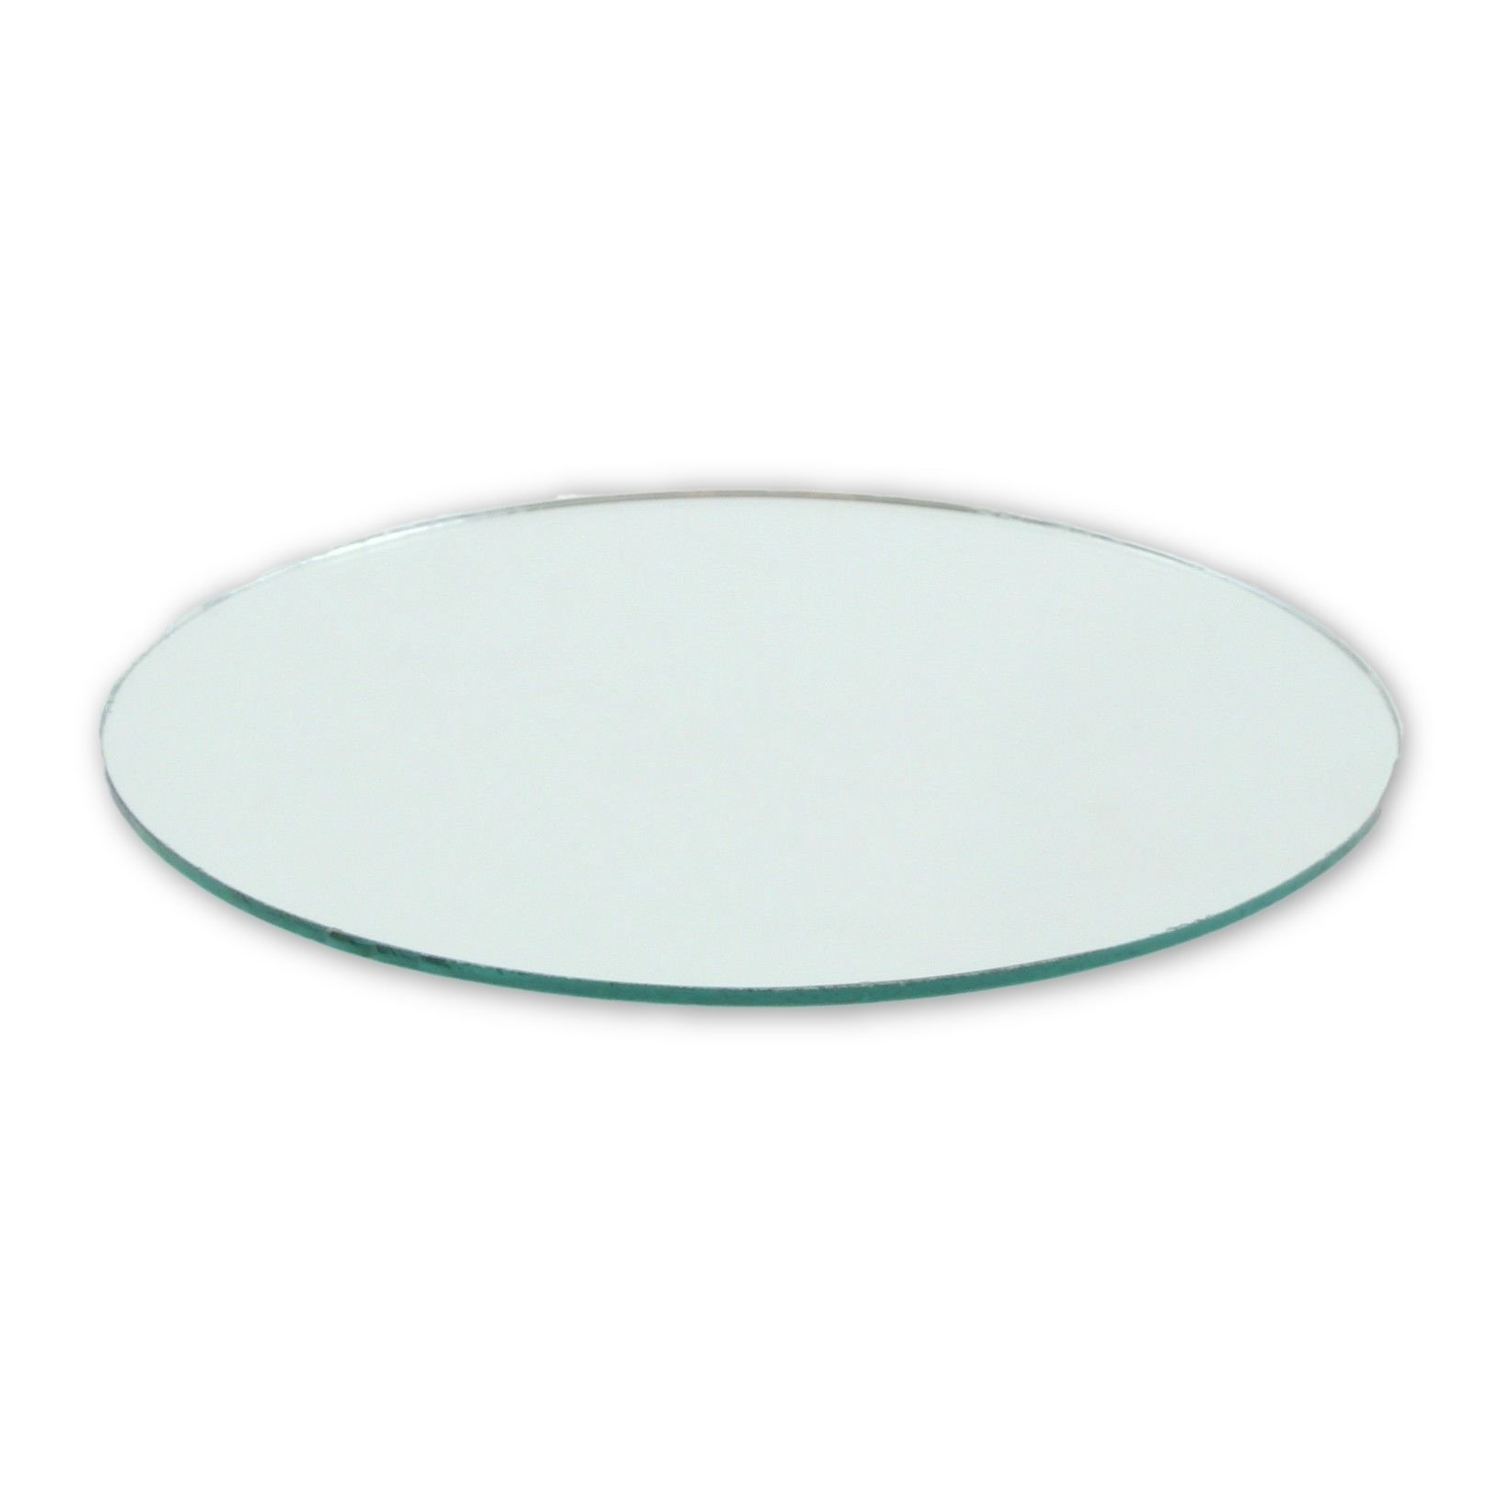 Small Mirror Pieces: 4 Inch Small Round Craft Mirrors Bulk 24 Pieces Also